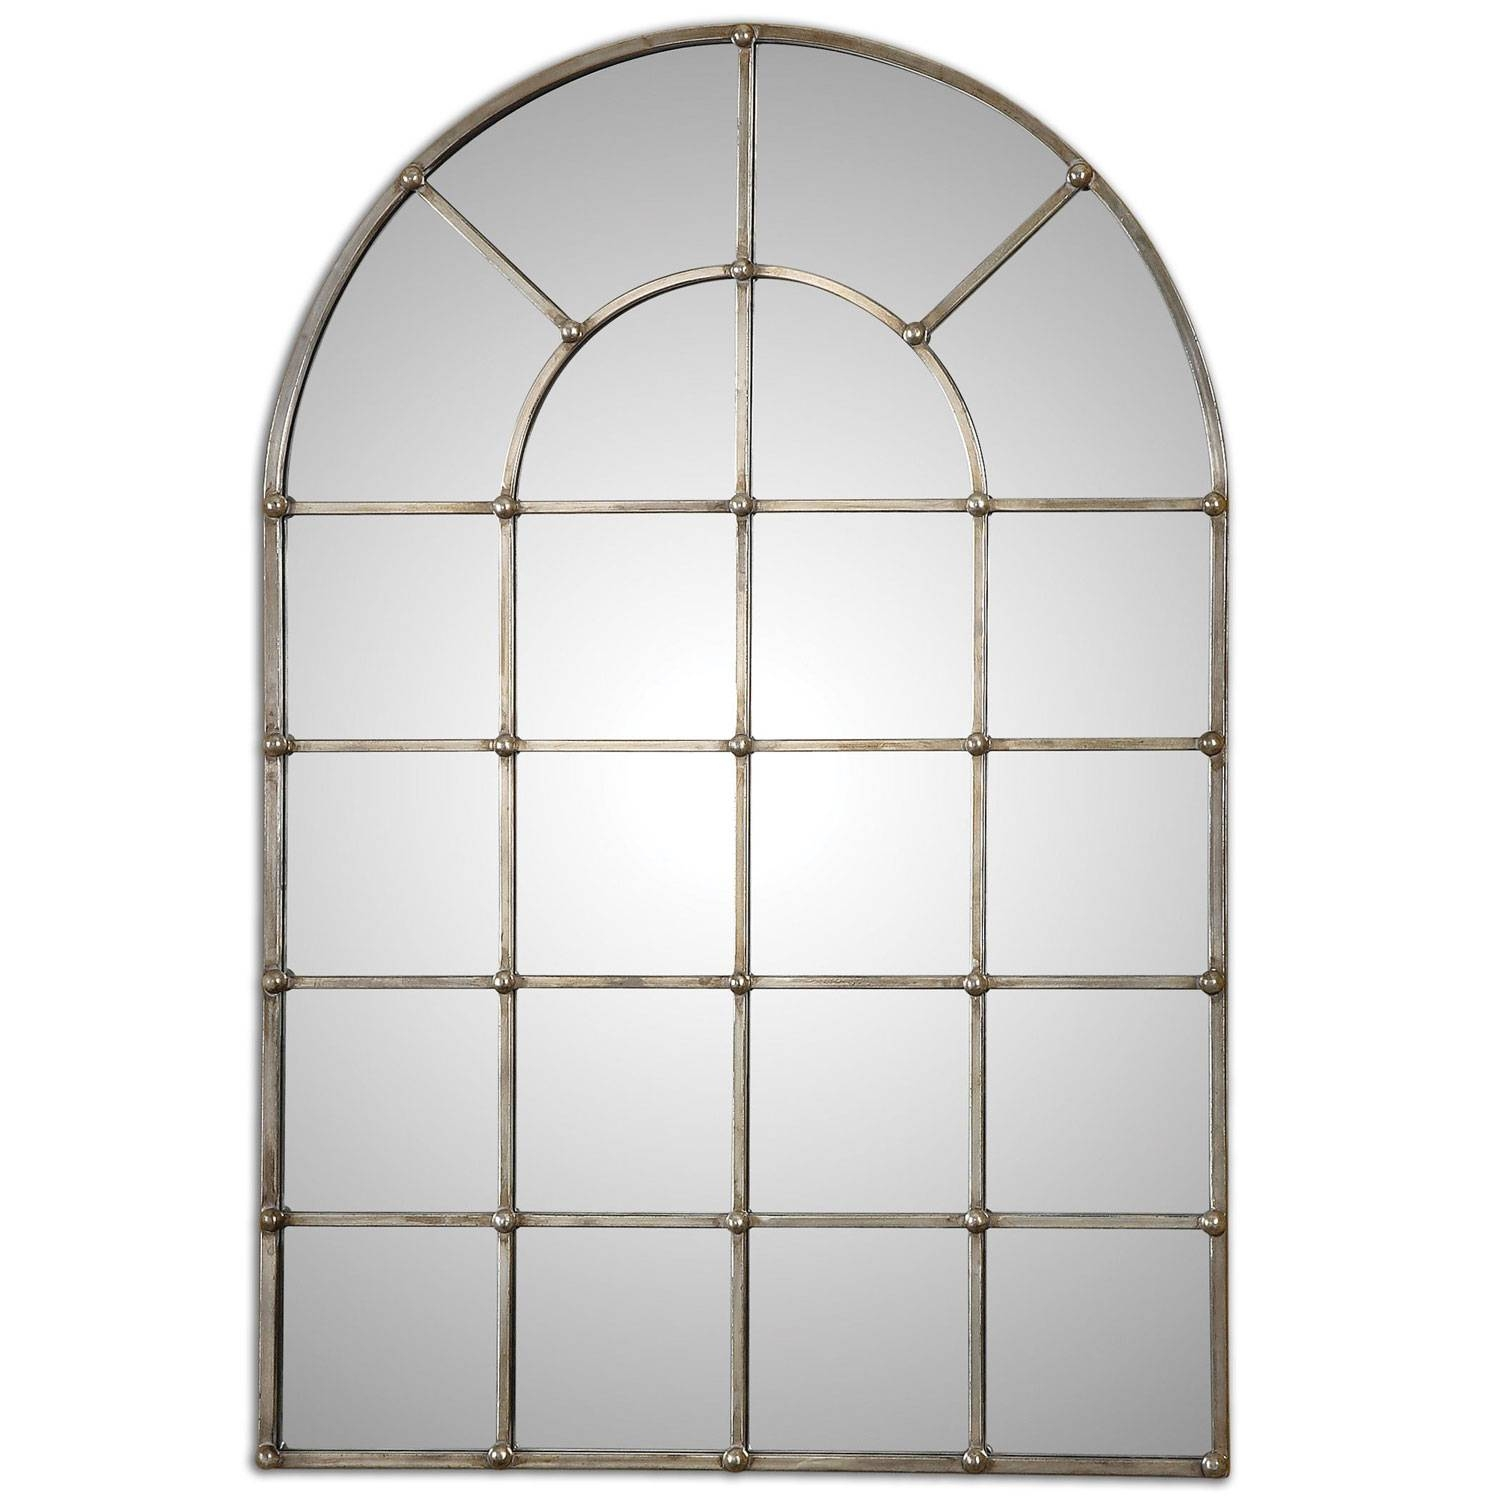 Barwell Forged Metal With Oxidized Plated Silver Arch Window regarding White Arched Window Mirrors (Image 13 of 25)